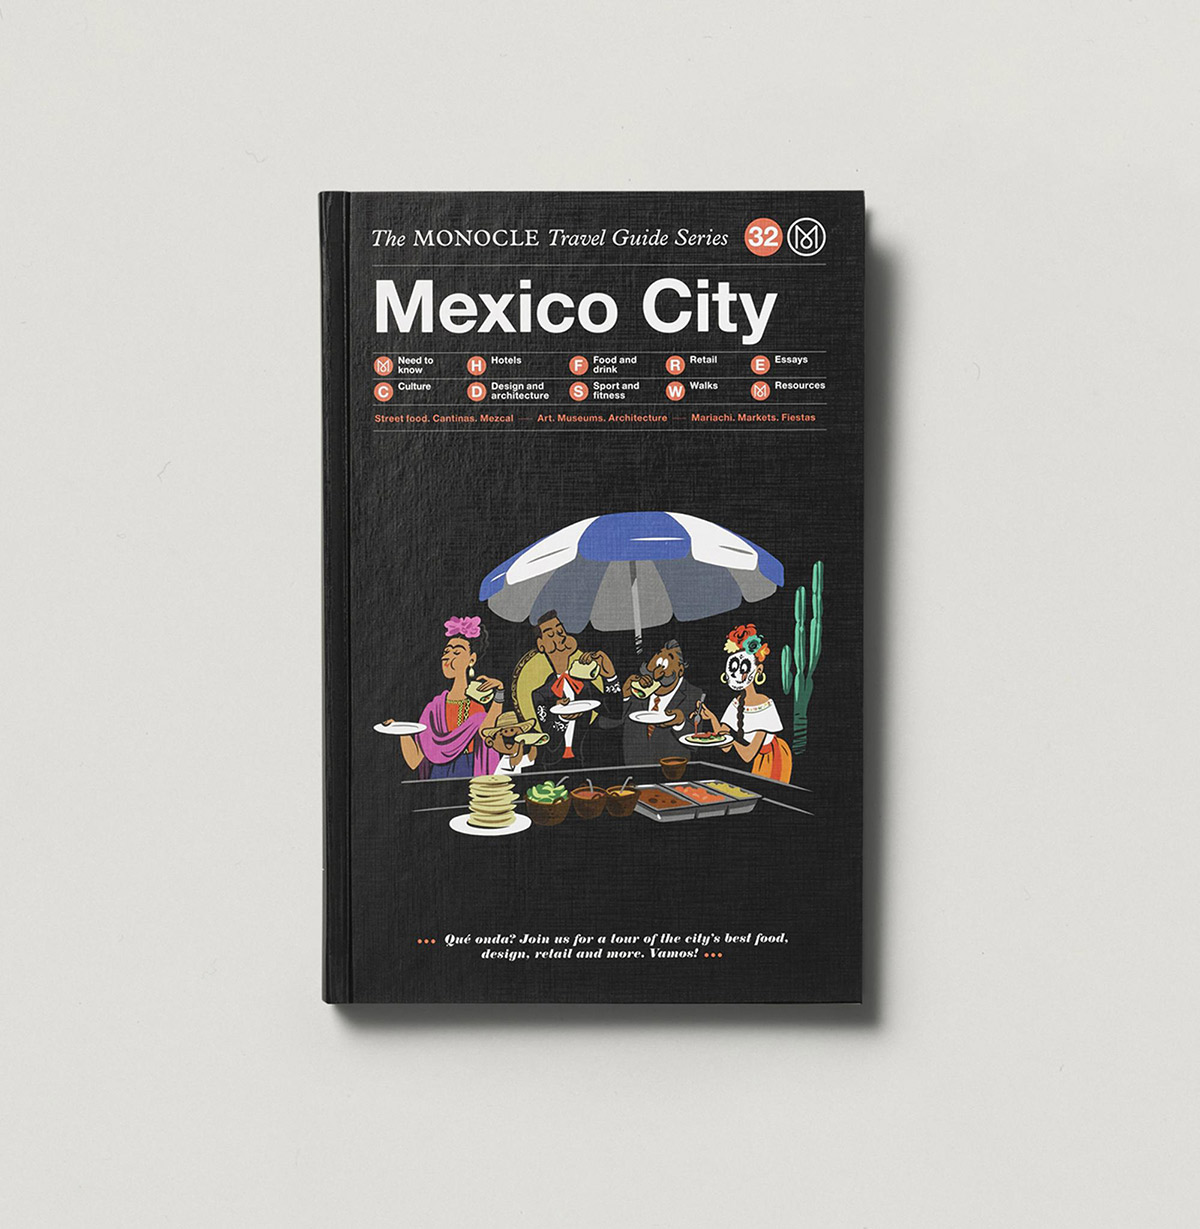 Slanted_Blog_publication_Monocle-Travel-Guide_04